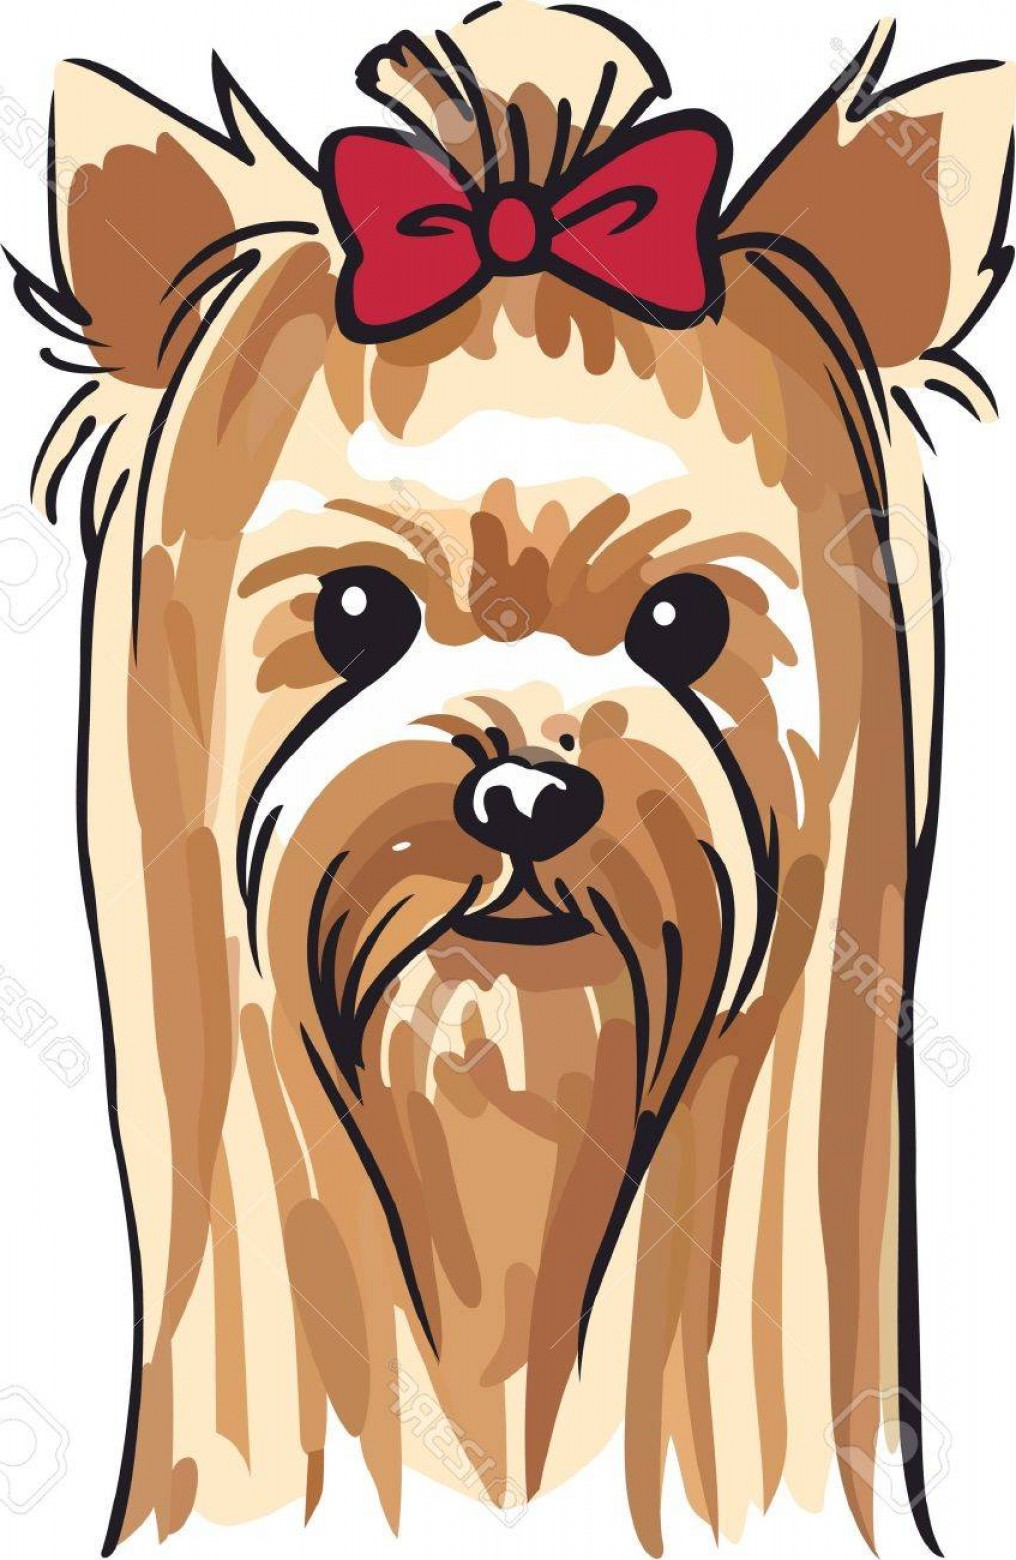 Cute Yorkie Dog Vector: Photostock Vector Show Your Love For Your Dog With A Cute Yorkie Design